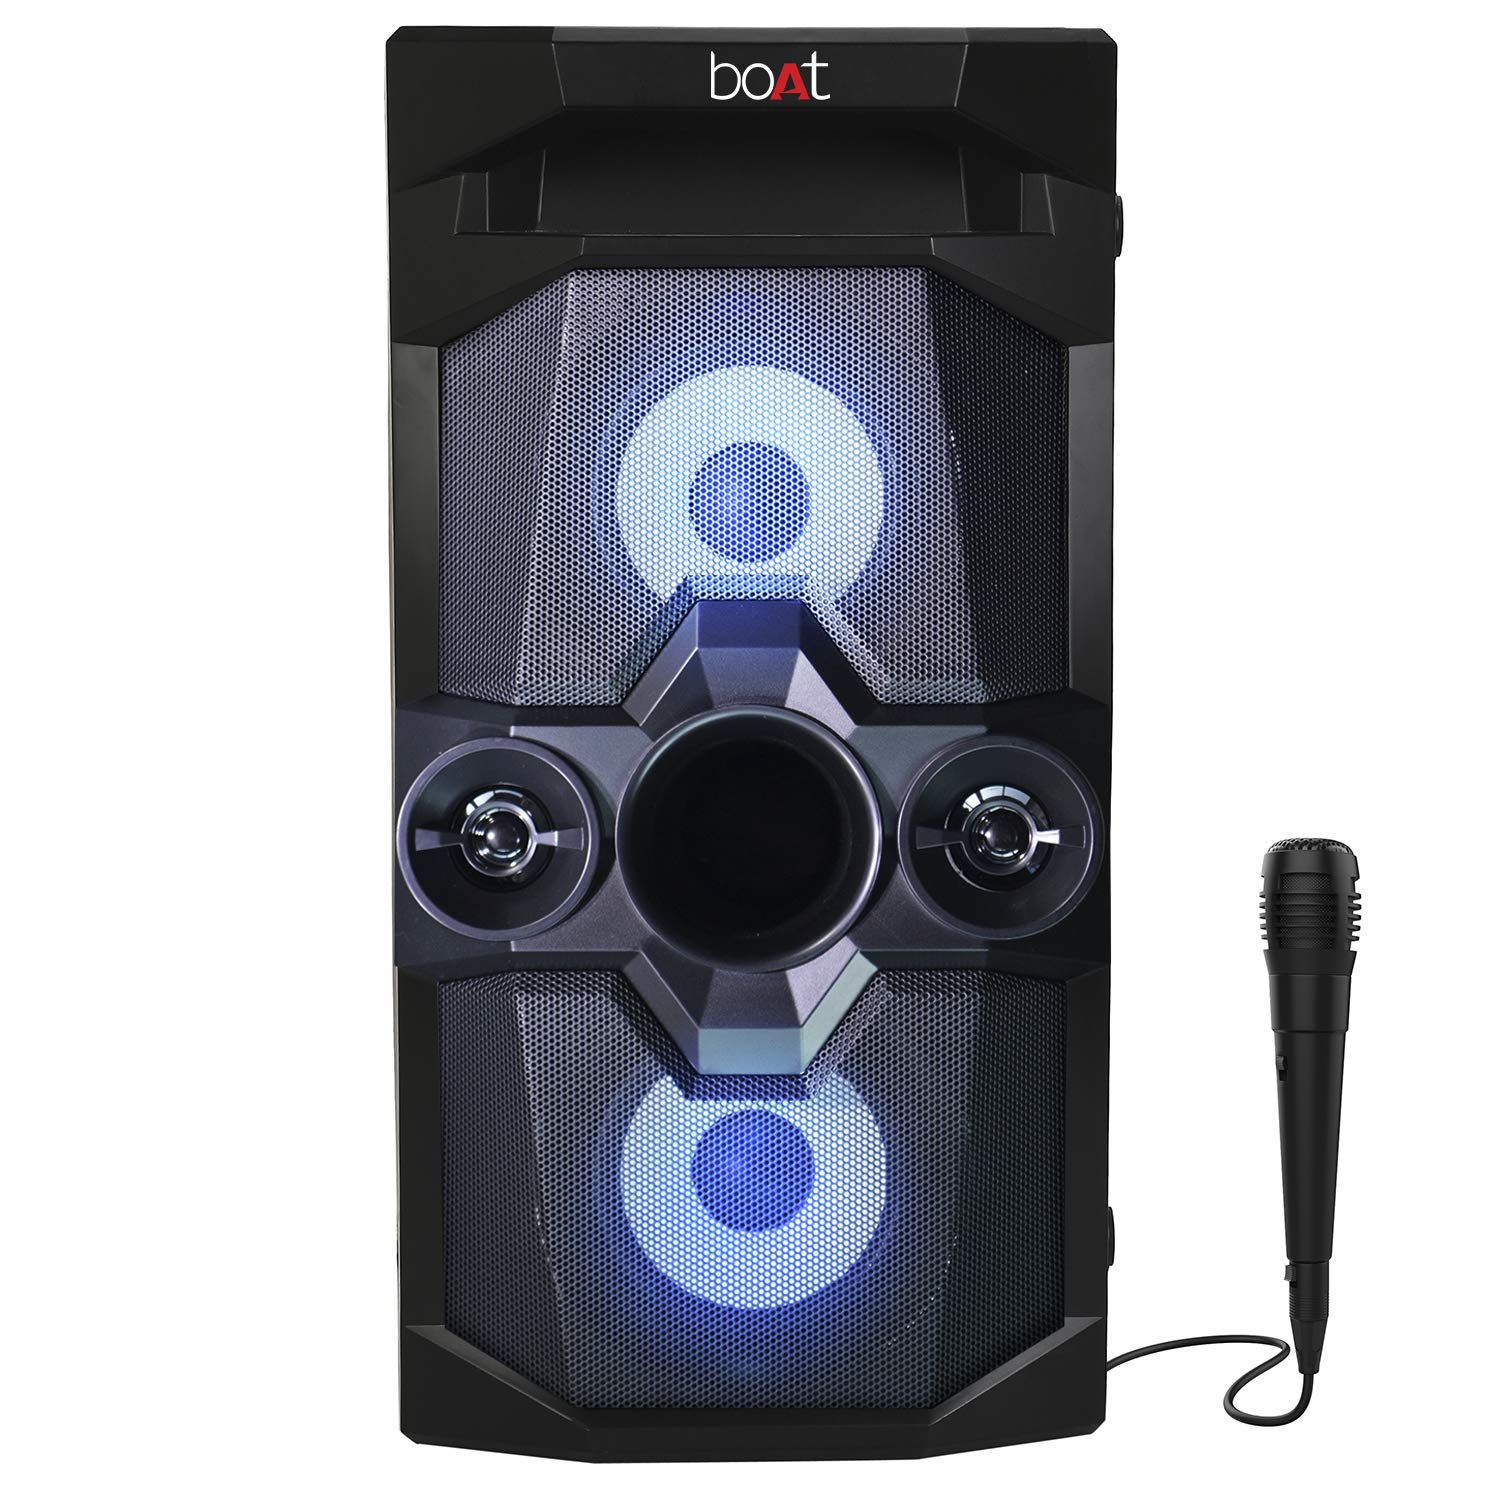 boAt PartyPal 70 Portable Bluetooth Speaker, 30W R.M.S Sound, TF/USB/AUX-in/FM Radio, Karaoke Compatible with Free Microphone, True Wireless Function, Integrated Controls & in-Built Mic (Space Black)